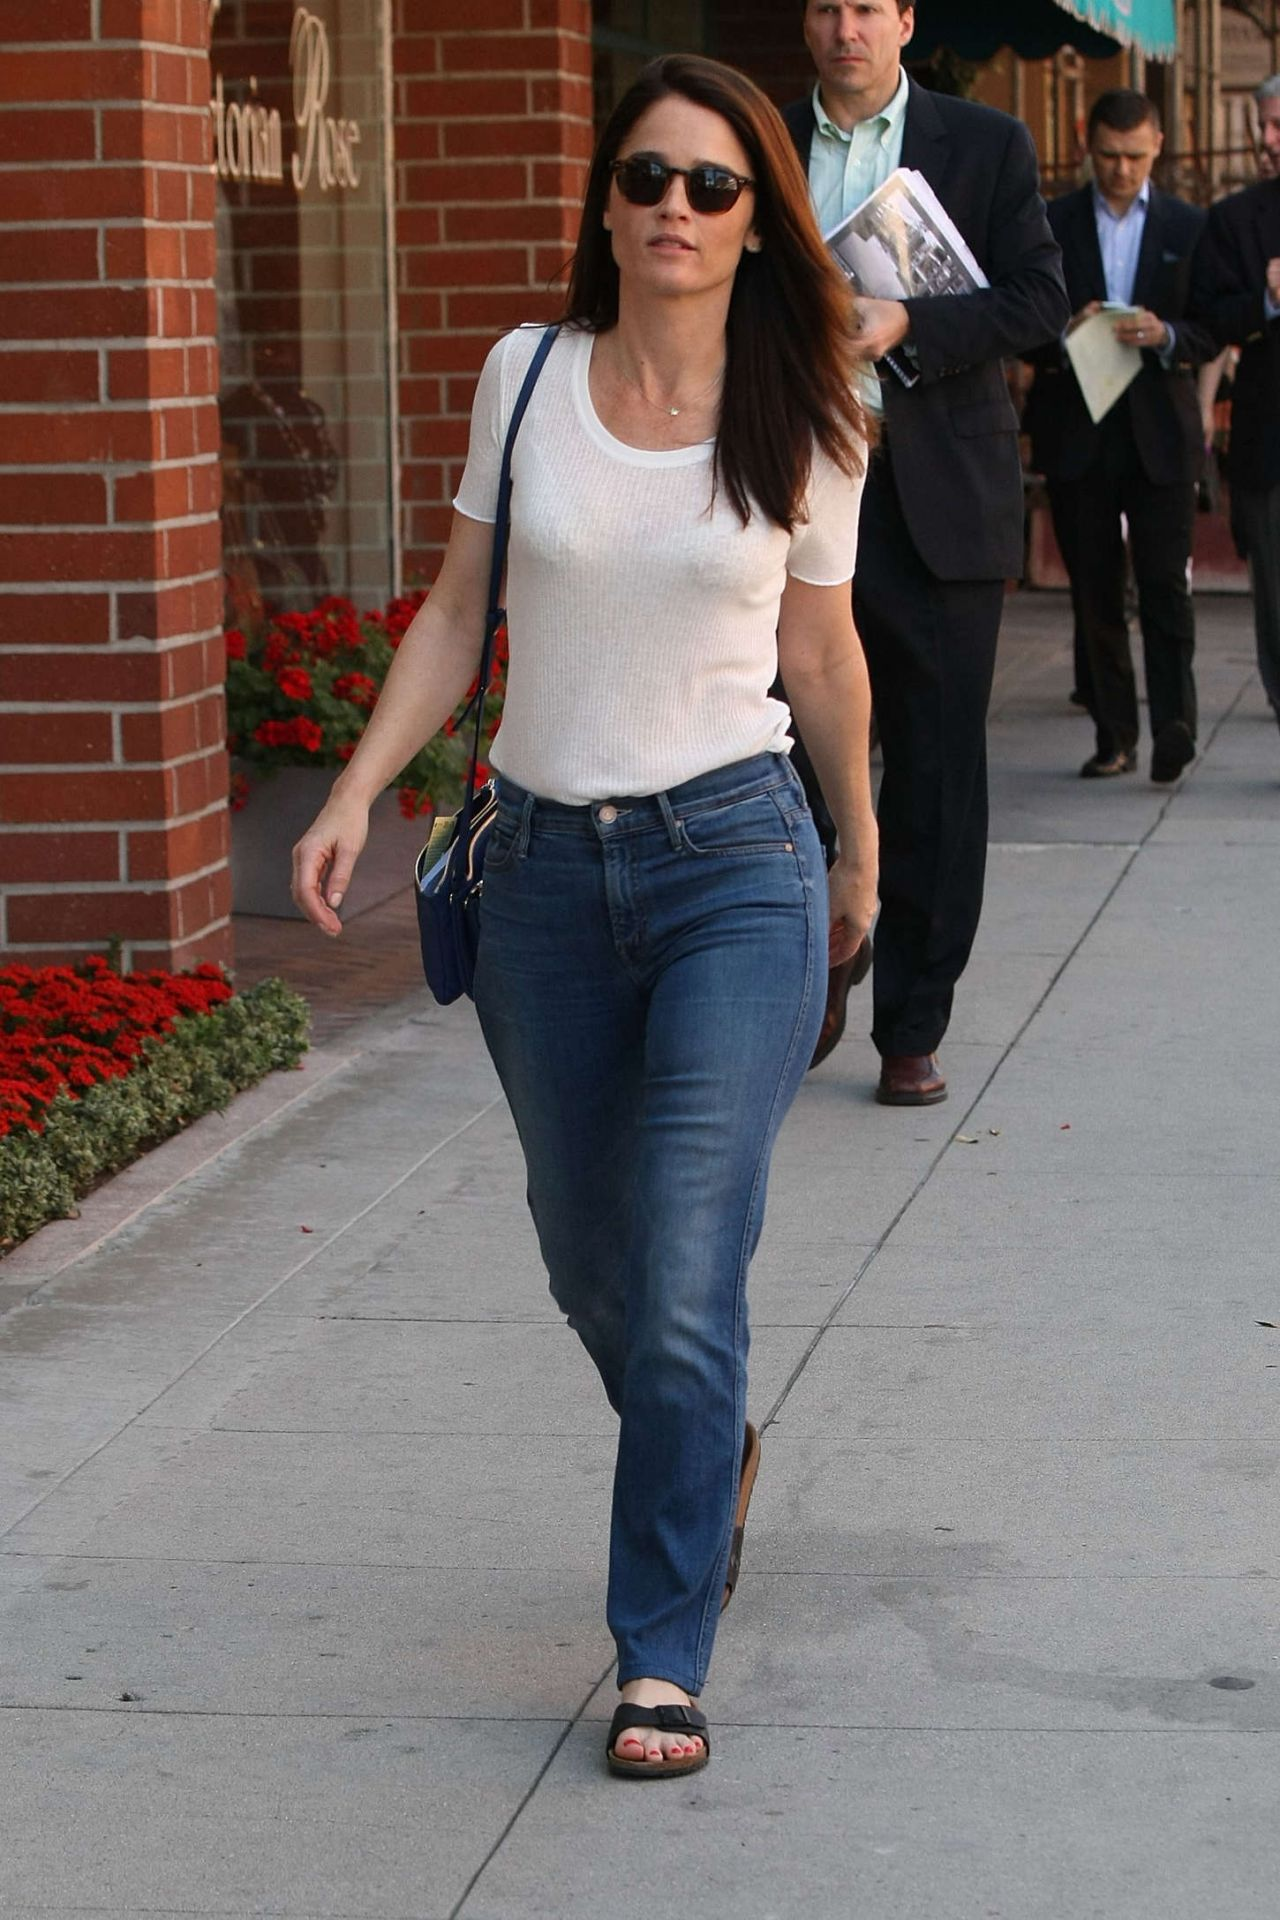 Robin Tunney Street Style - Out in Beverly Hills, March 2015